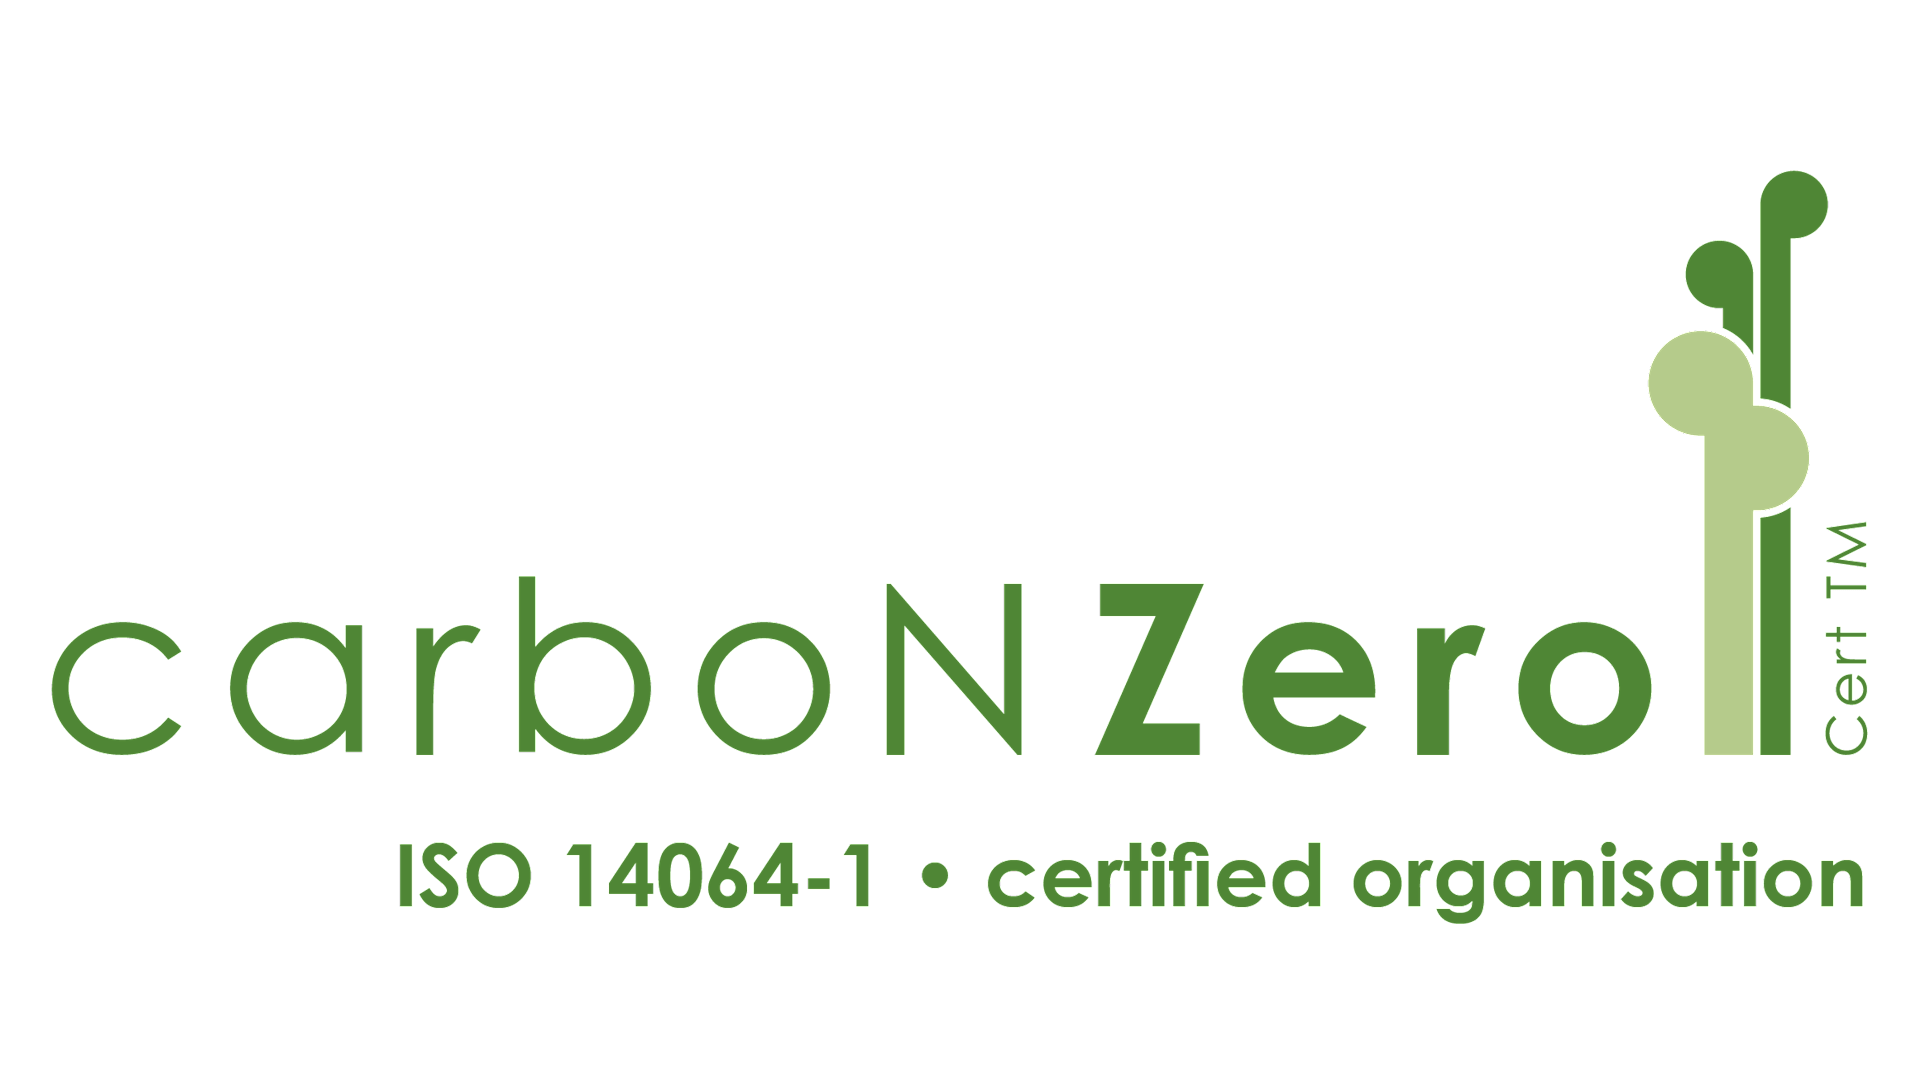 YHA New Zealand managed hostels are carboNZero certified